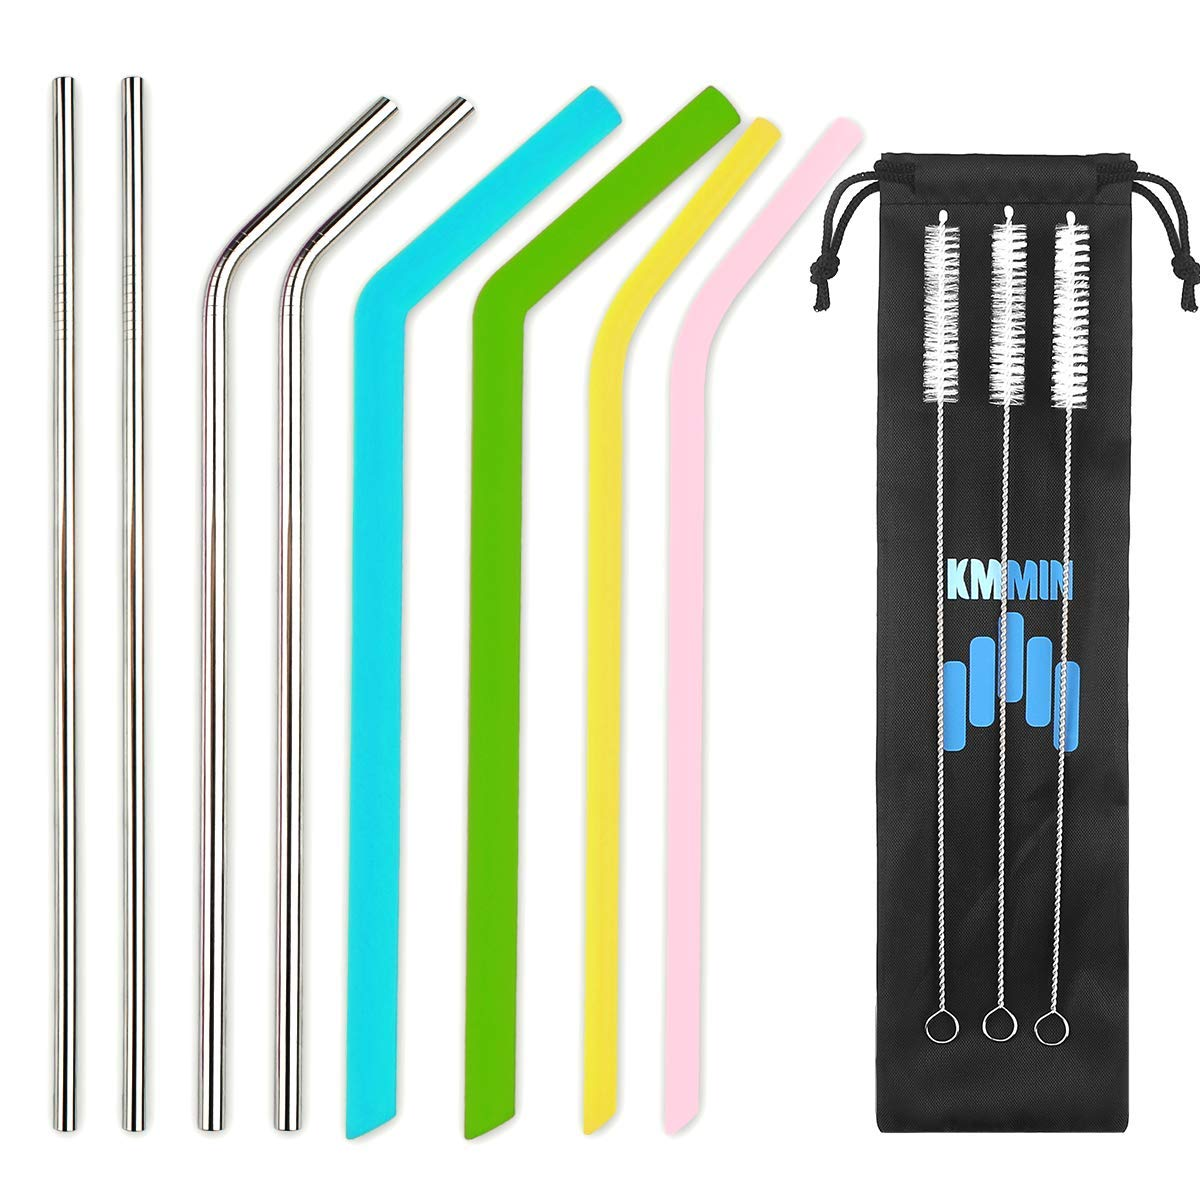 Reusable Straws,Kmmin Stainless Steel Straws Silicone Straws for 30&20 oz Tumblers Fits RTIC&YETI Cups-4 Silicone Straws+4 Metal Straws+3 Brushes-Reusable Straw Extra Long+1 Storage Pouch